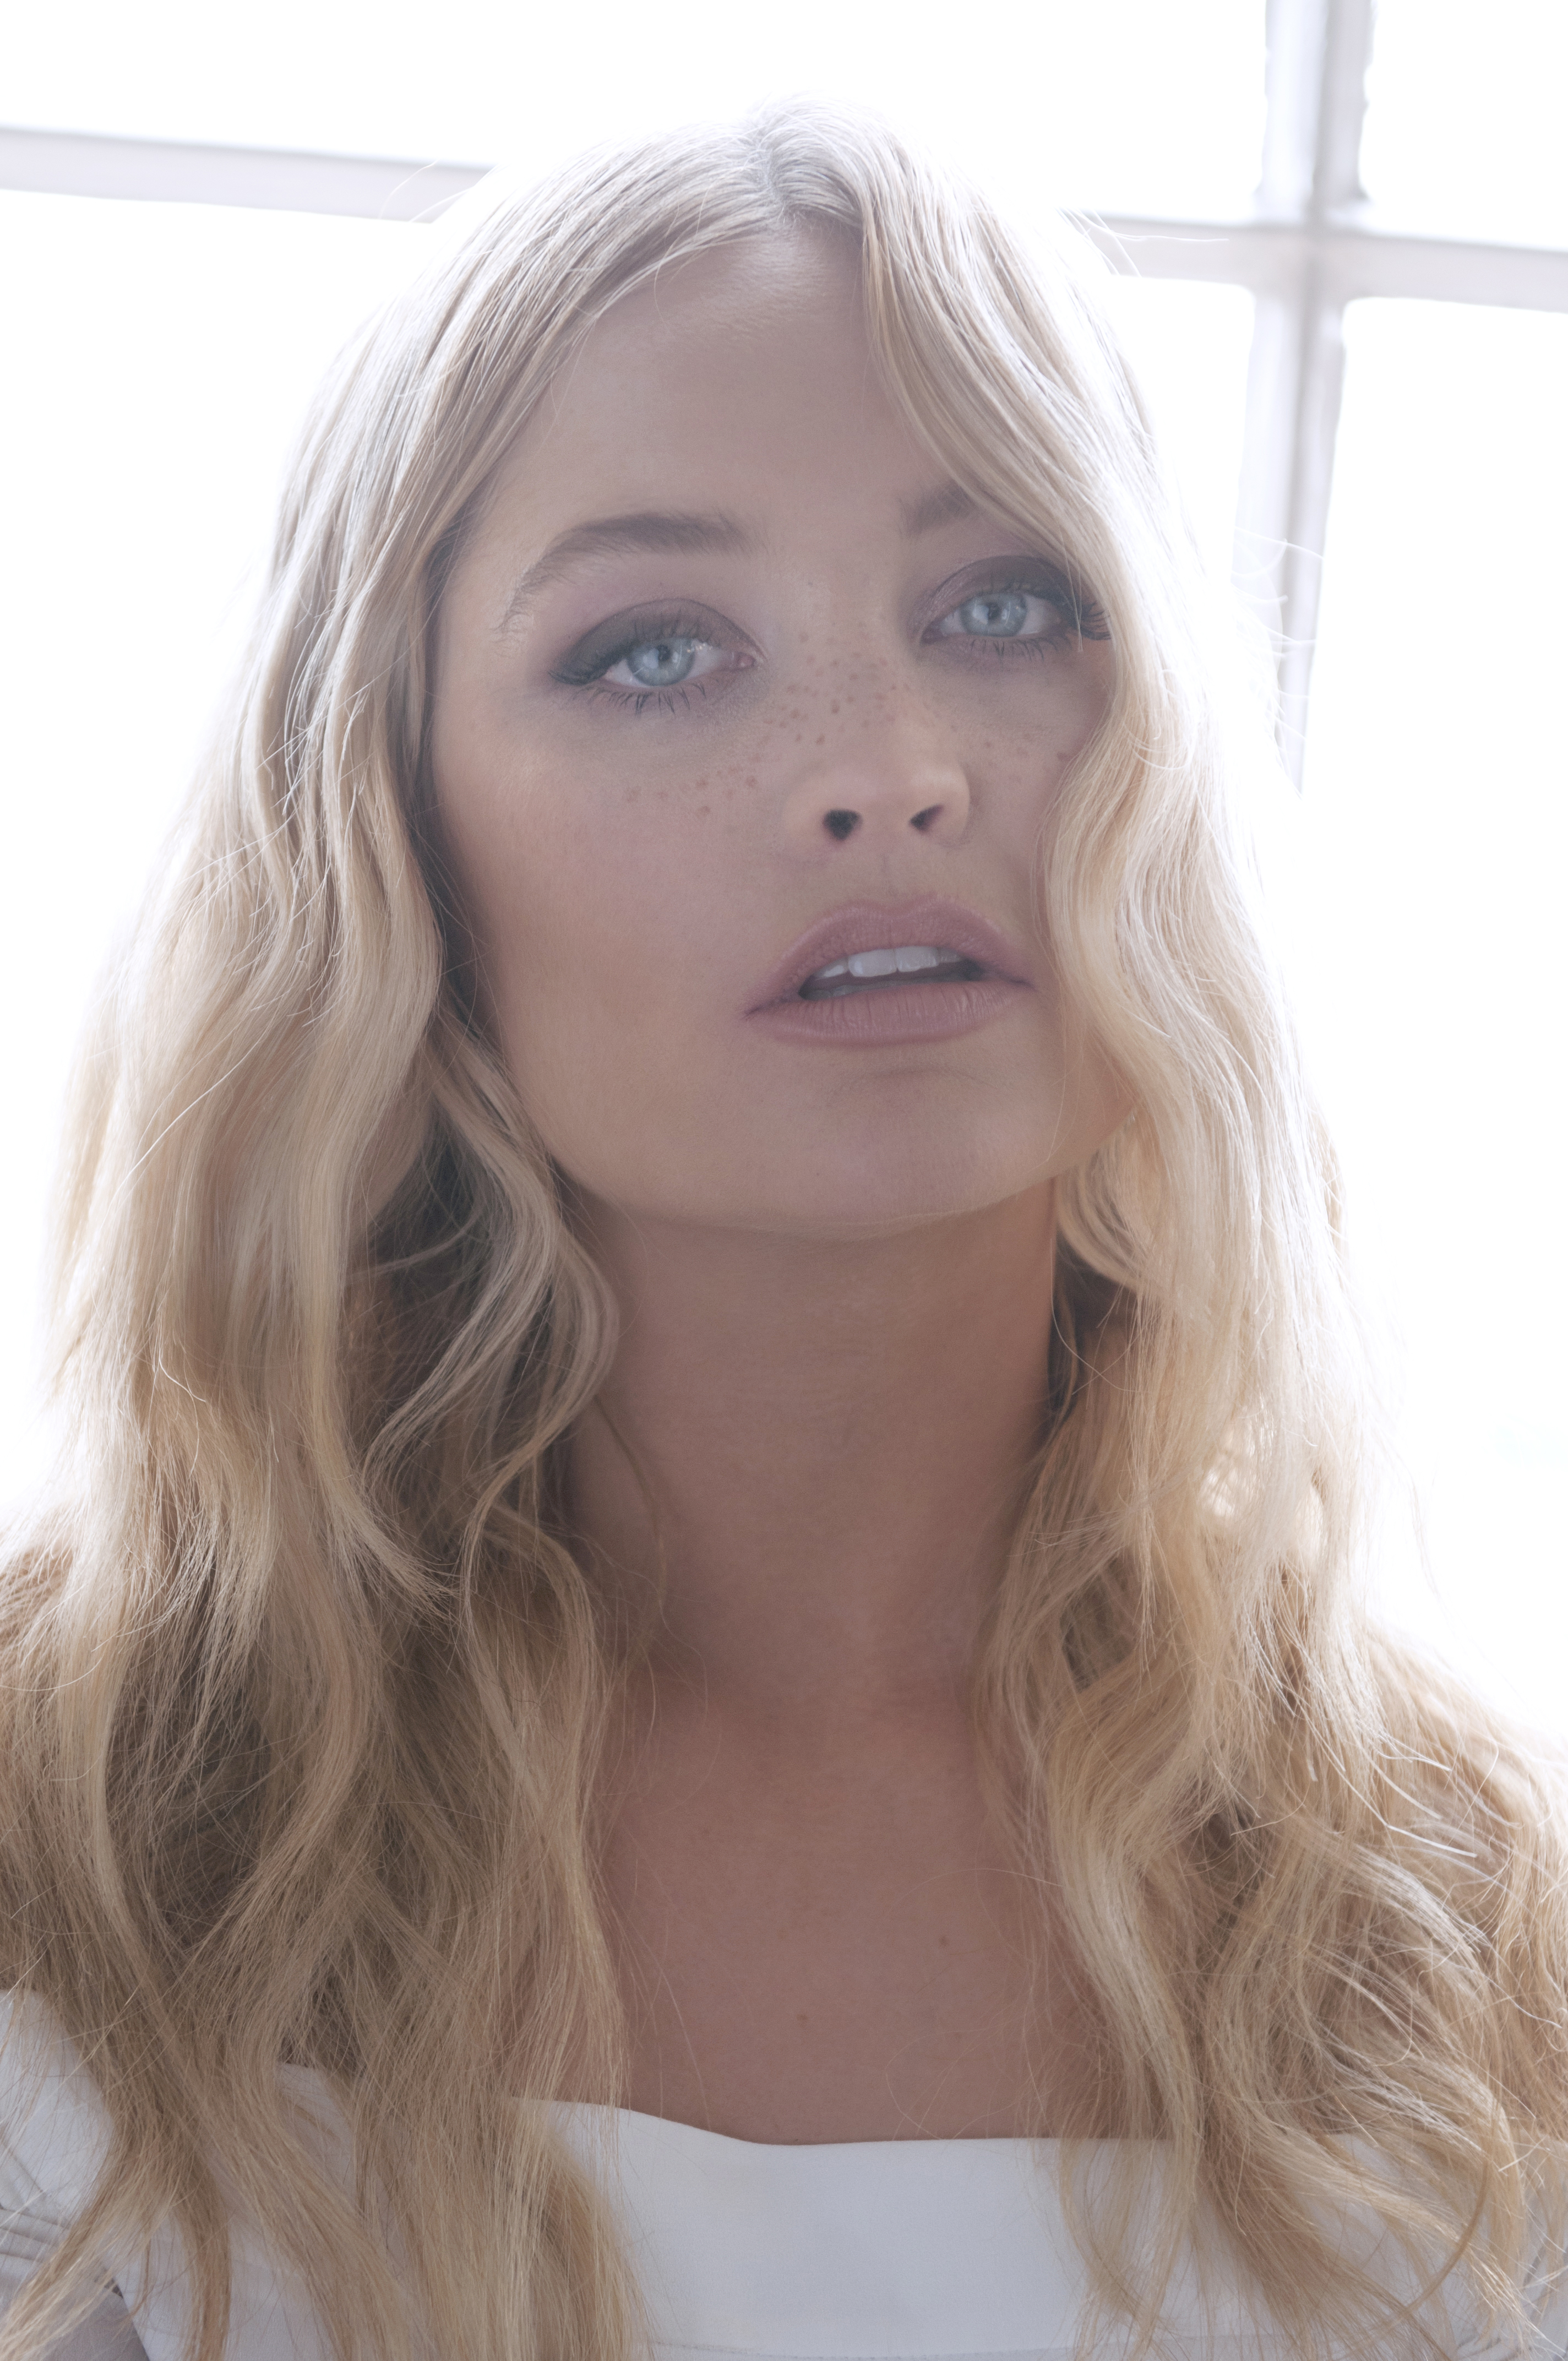 Laura Whitmore: The Truth Behind Social Media